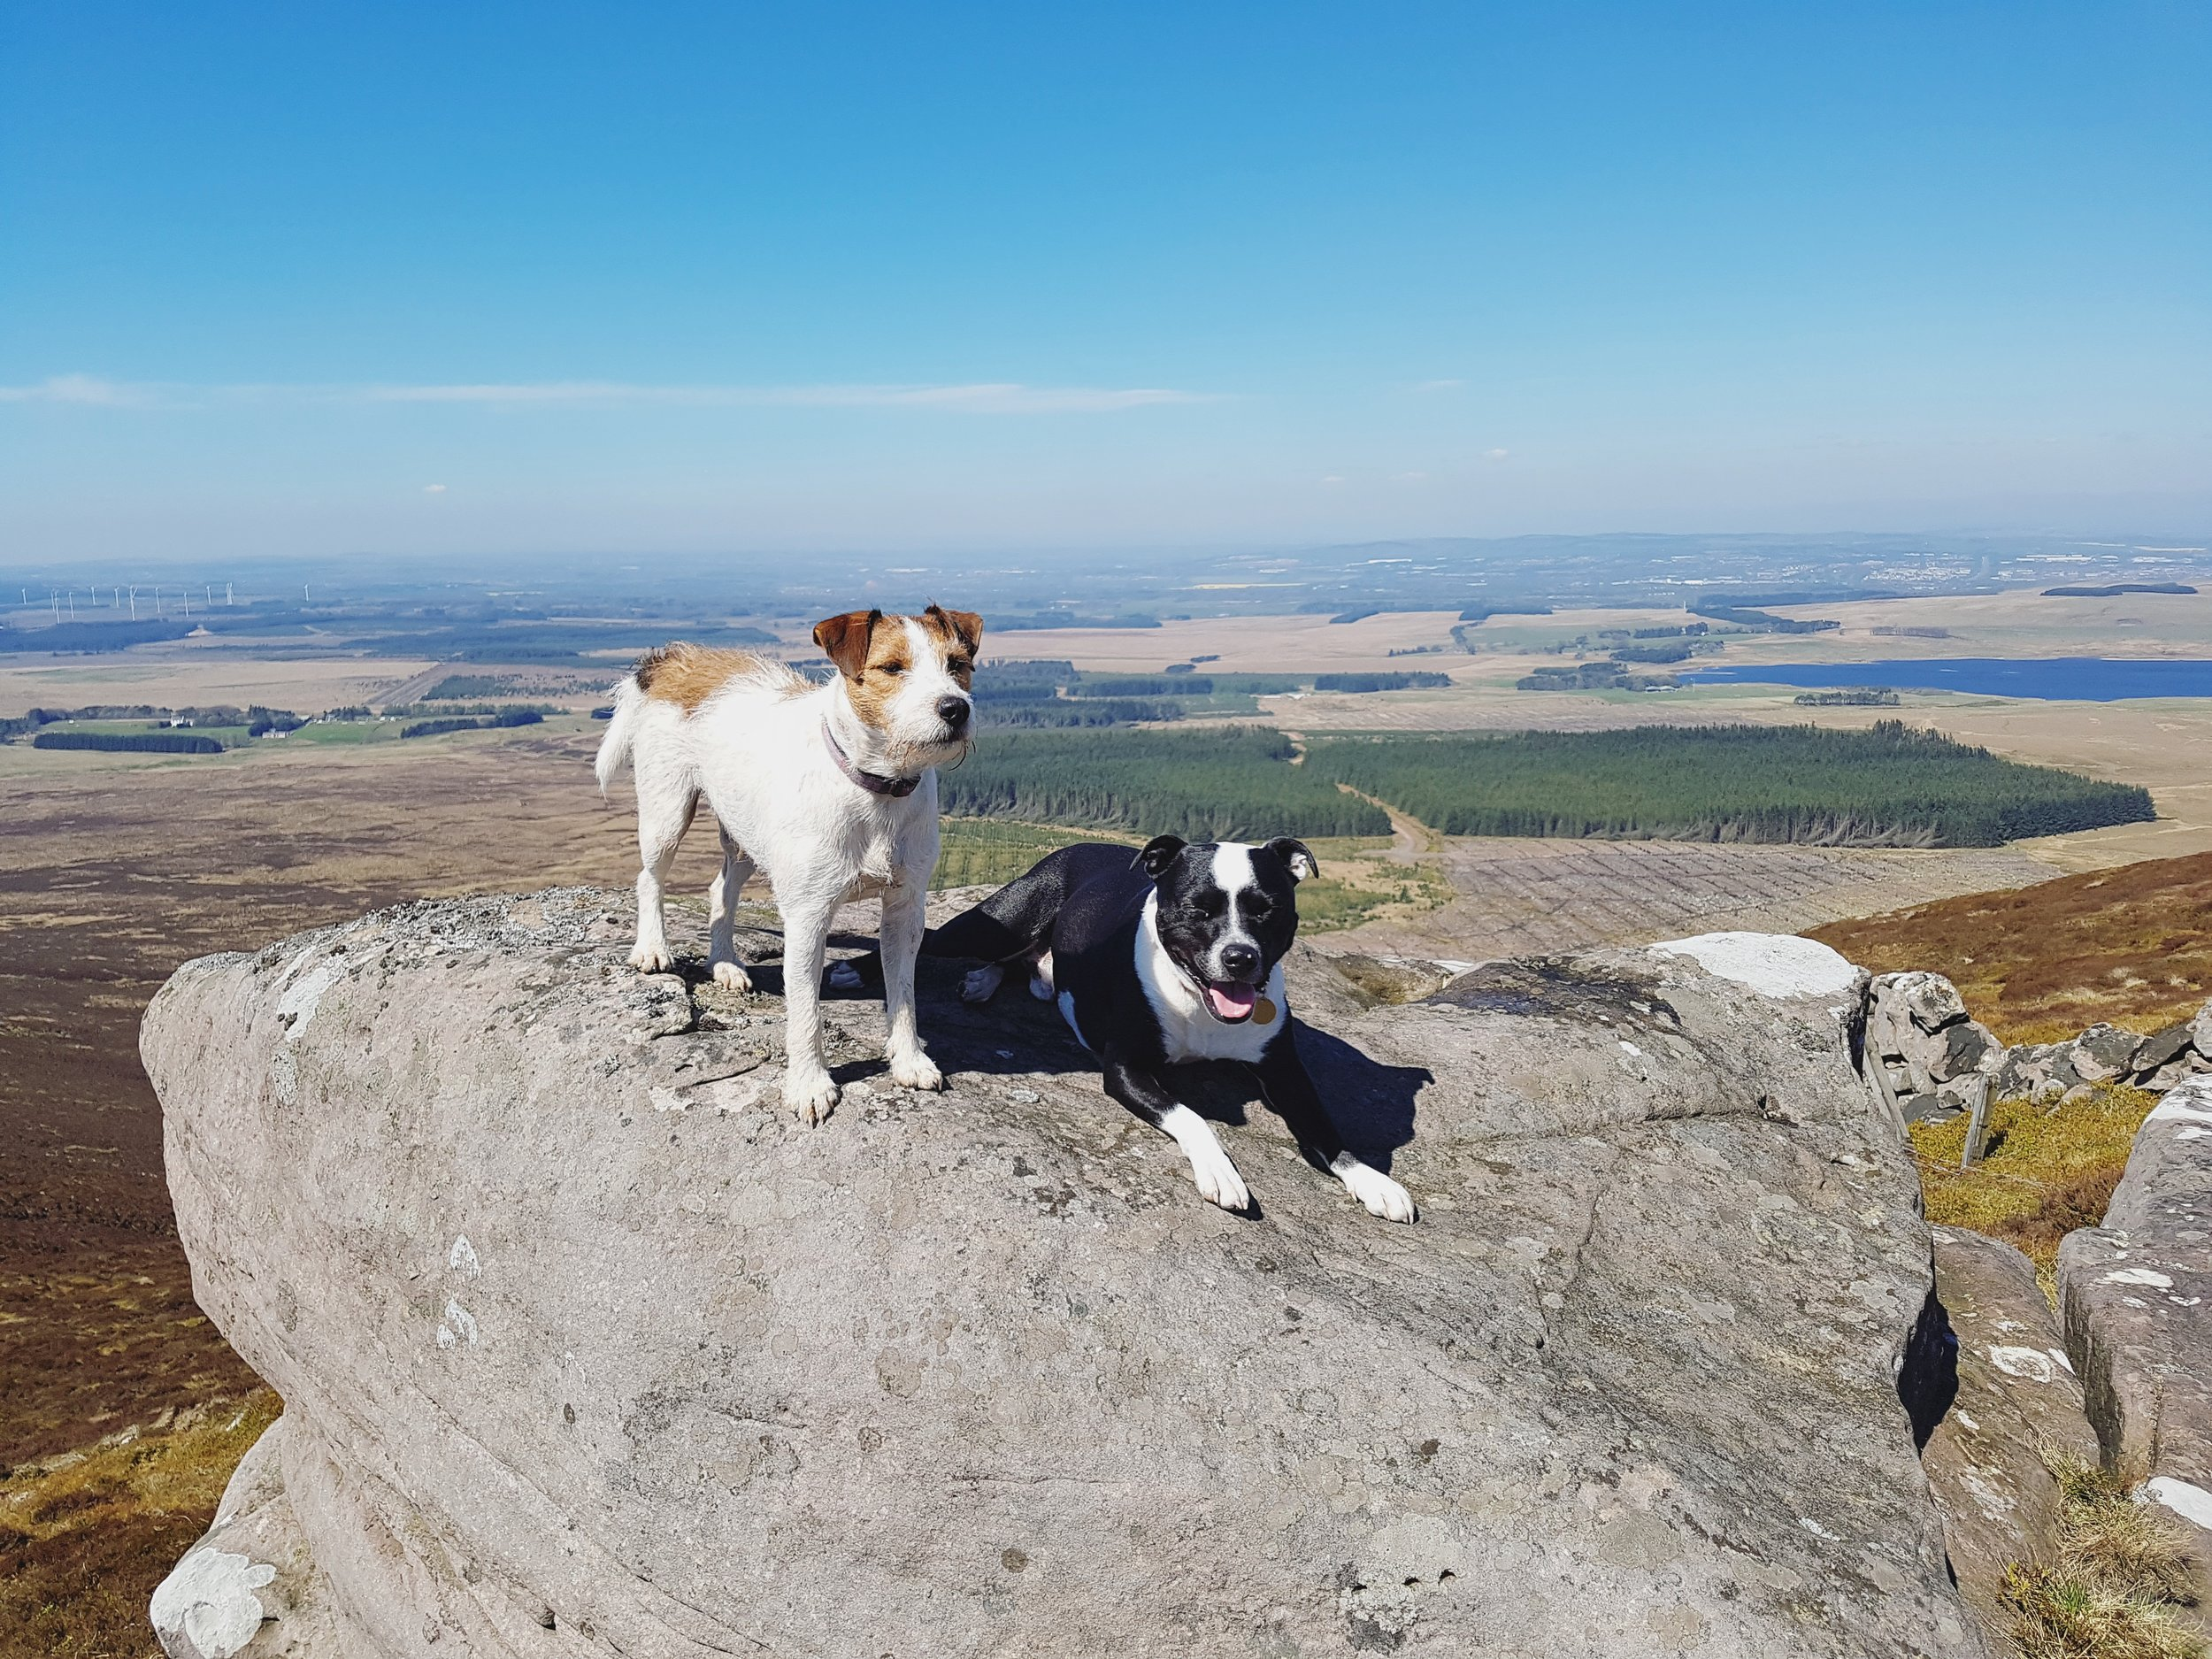 Doggie Day Trips - We want every day to be your dog's best day ever! We travel outside of the city and spend the day walking in the countryside to provide off leash socialisation at its best, all while working on good manners and participating in fun activities.